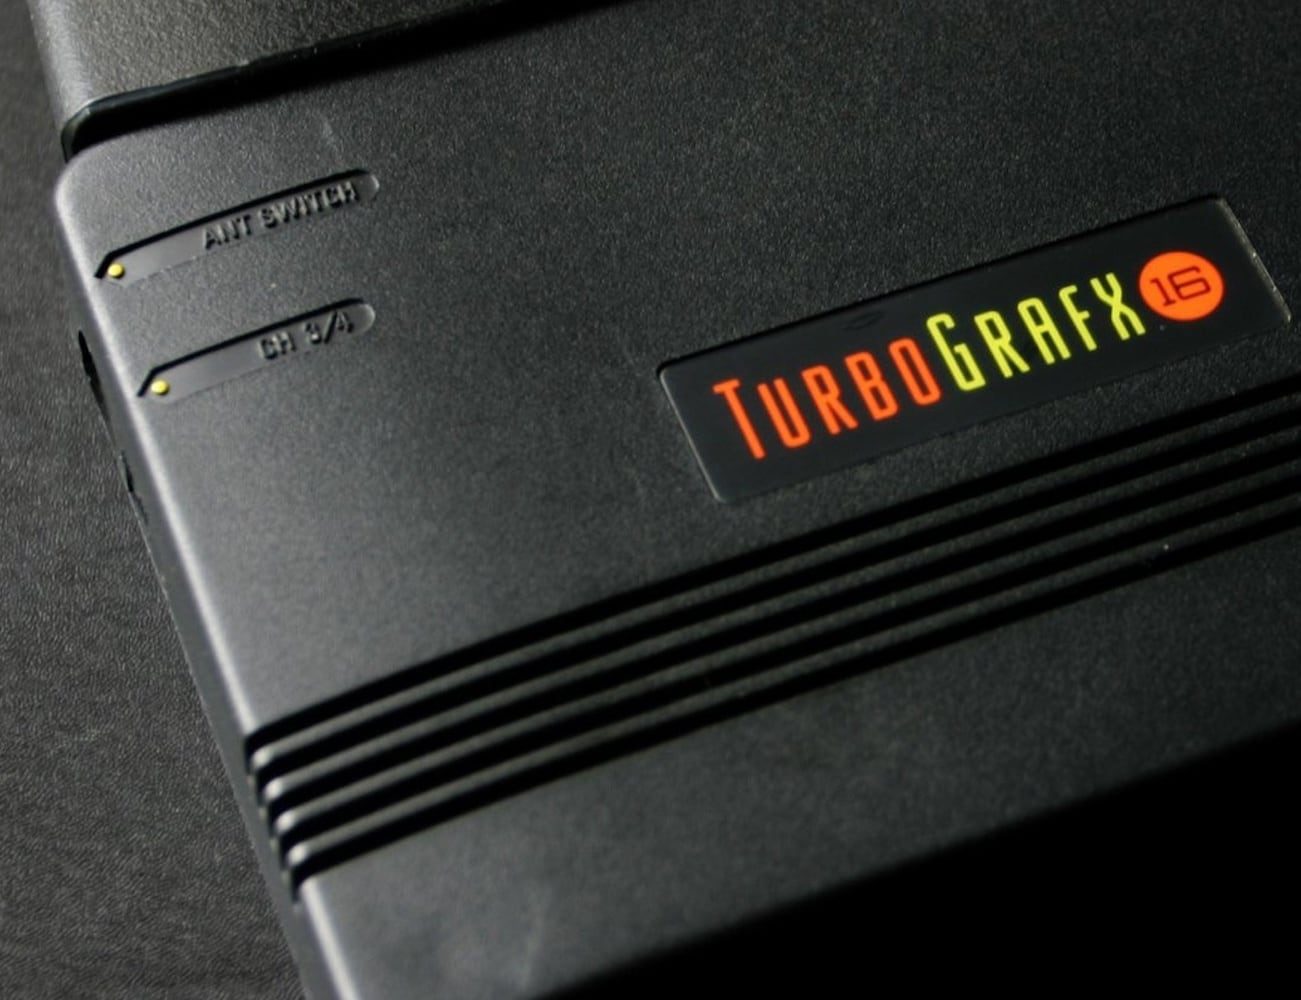 Konami TurboGrafx-16 mini Compact Video Game Console